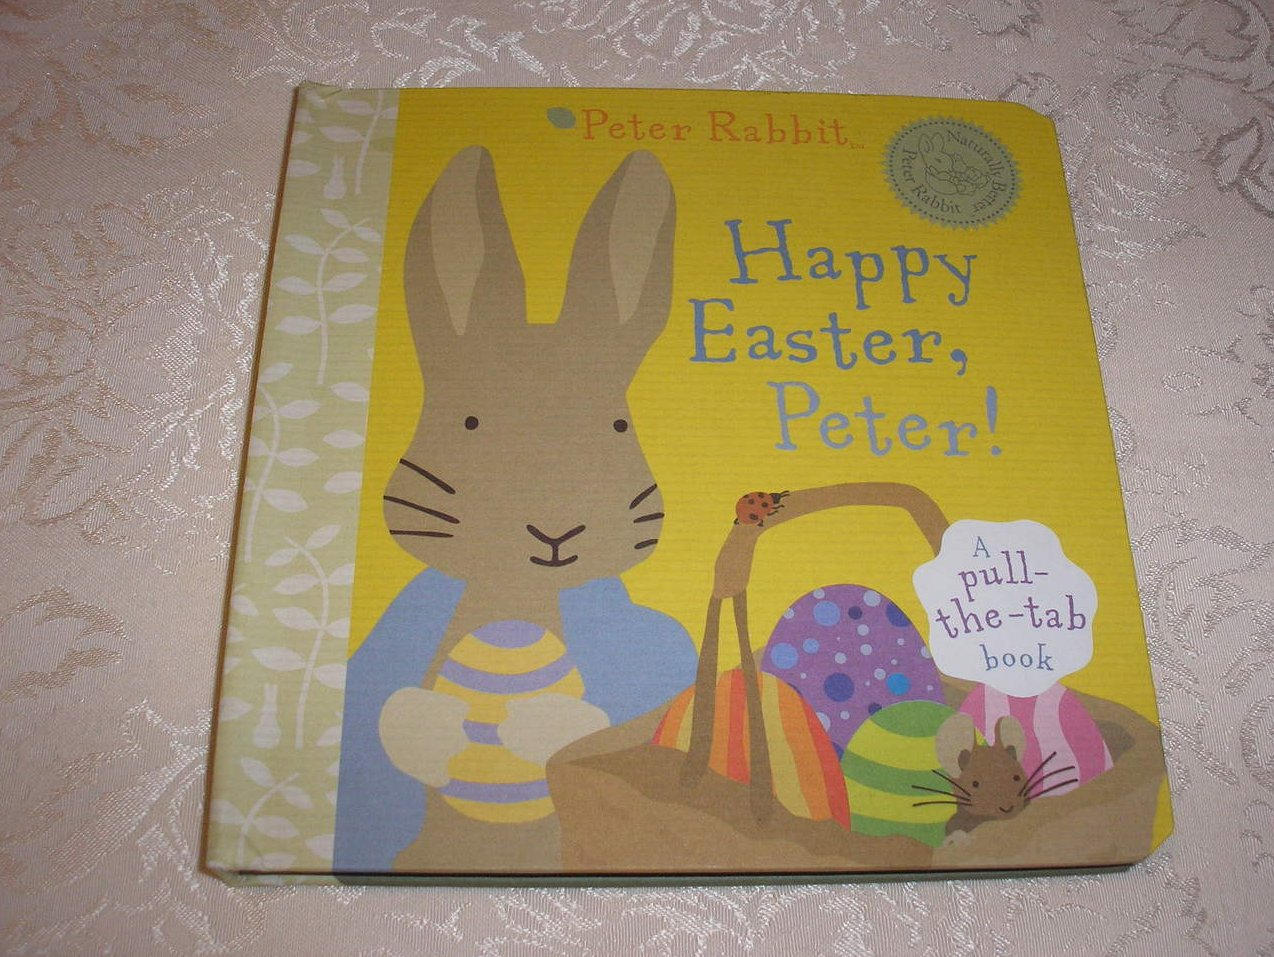 Happy Easter, Peter! Frederick Warne brand new pull the tab board book